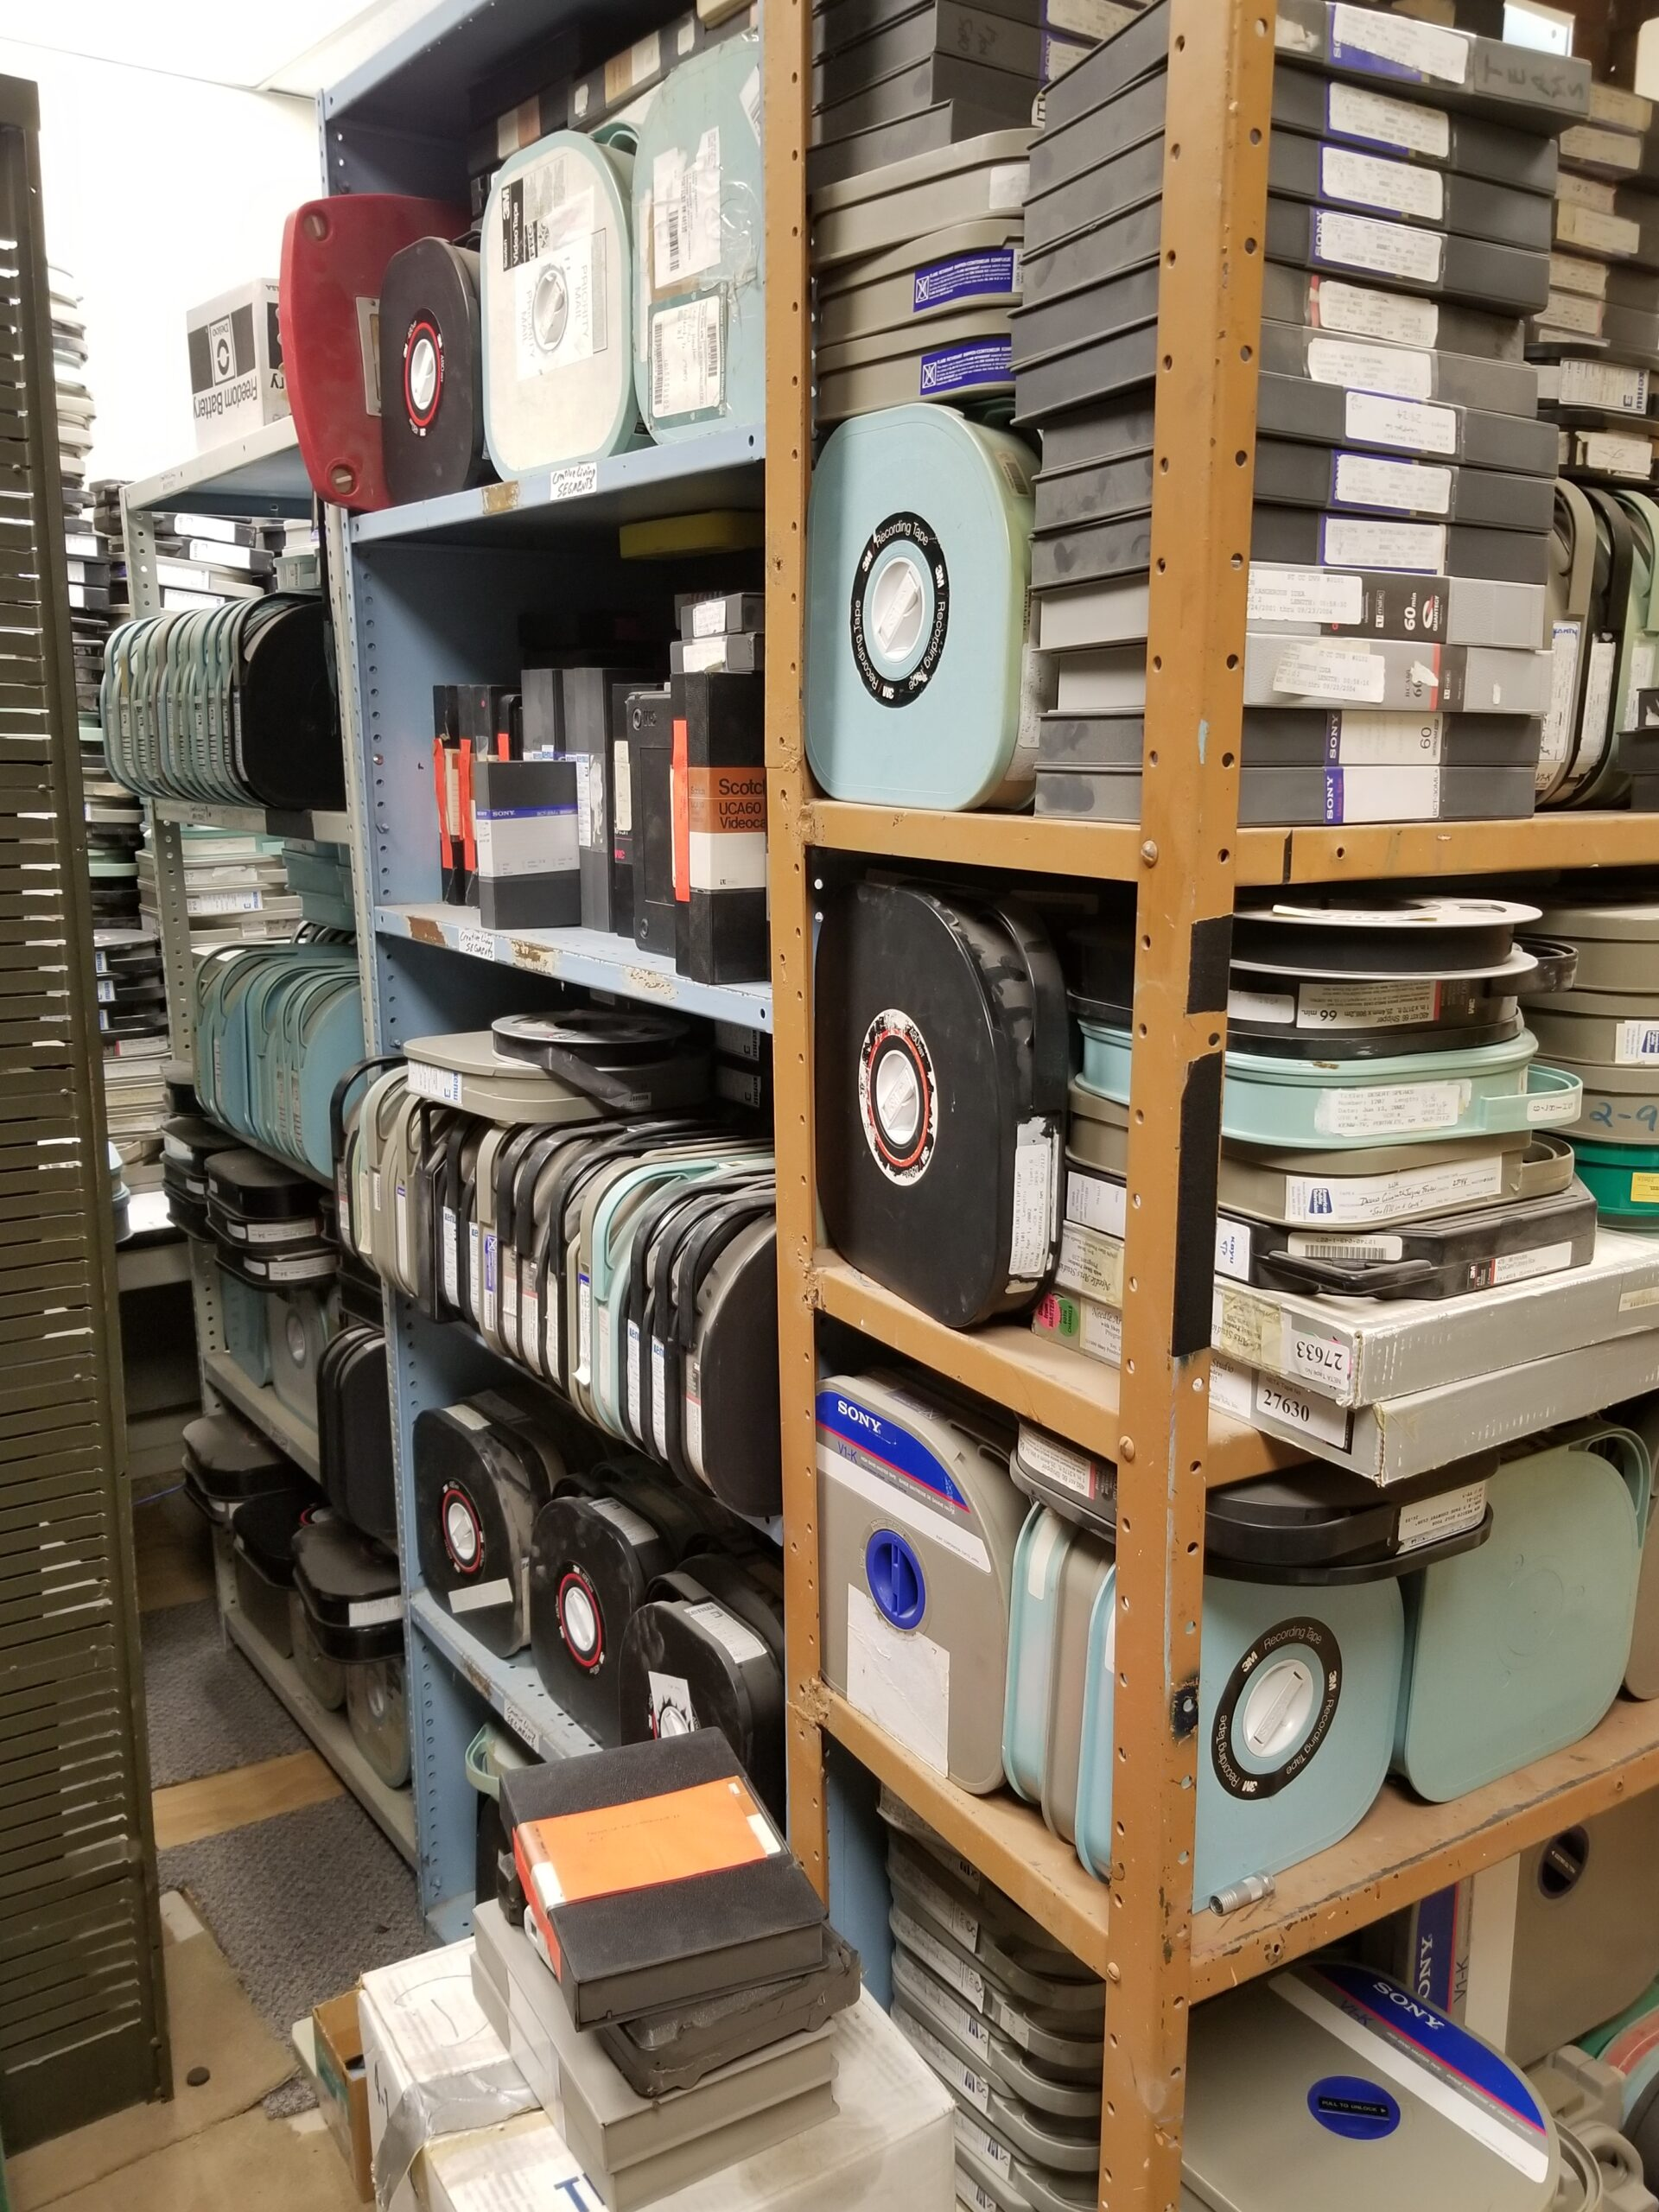 Legacy media tapes and reels in storage at KENW.